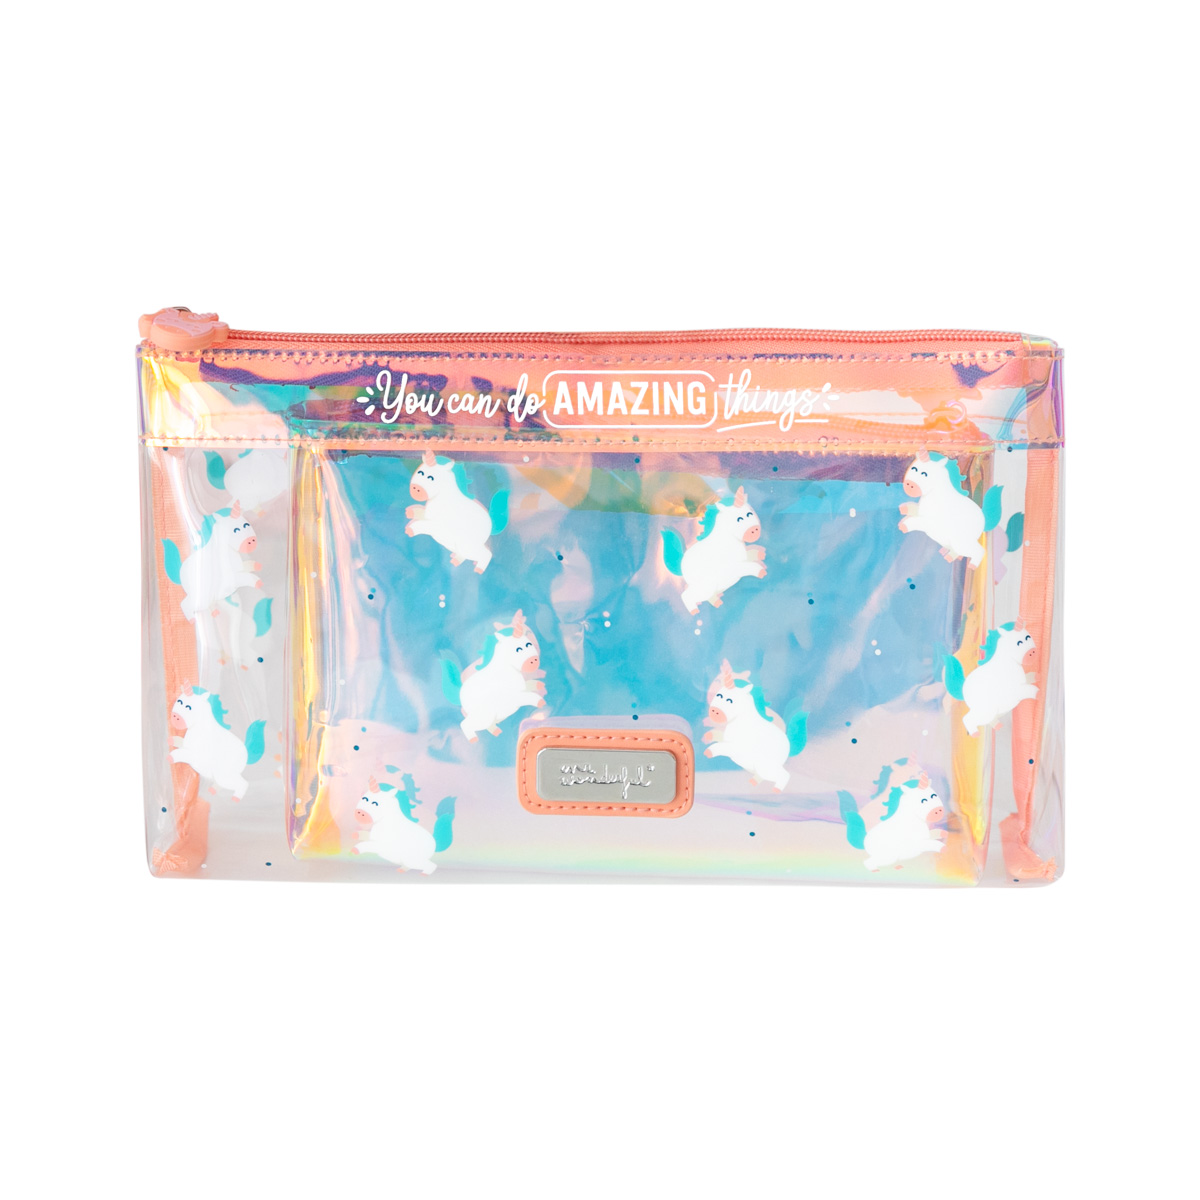 Set Of 2 Toiletries Bags Unicorn - You Can Do Amazing Things